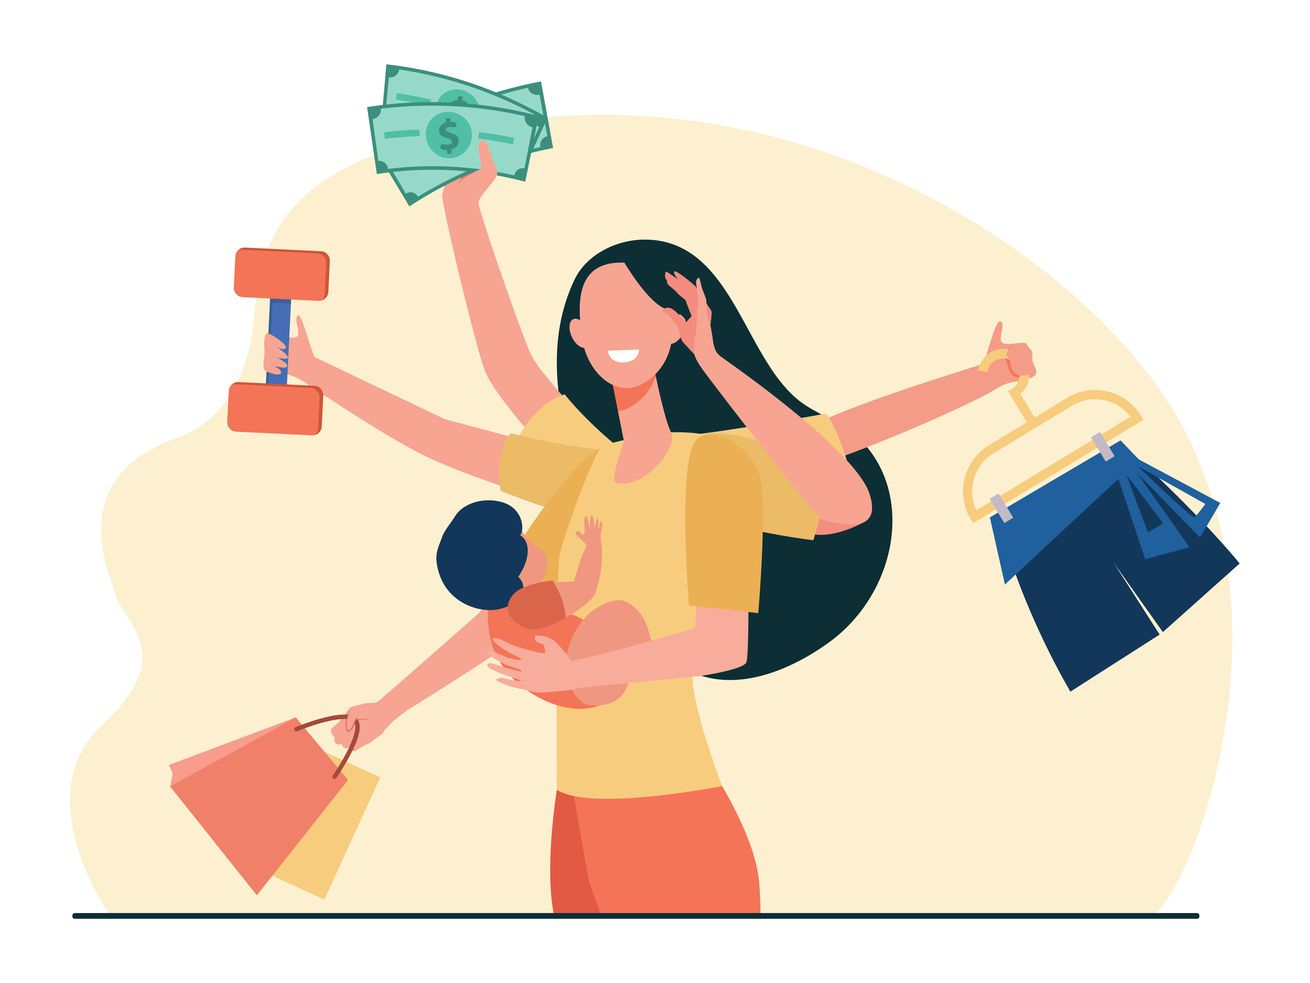 Illustration of a mom with many arms holding symbolic objects like clothes, money, and a child.